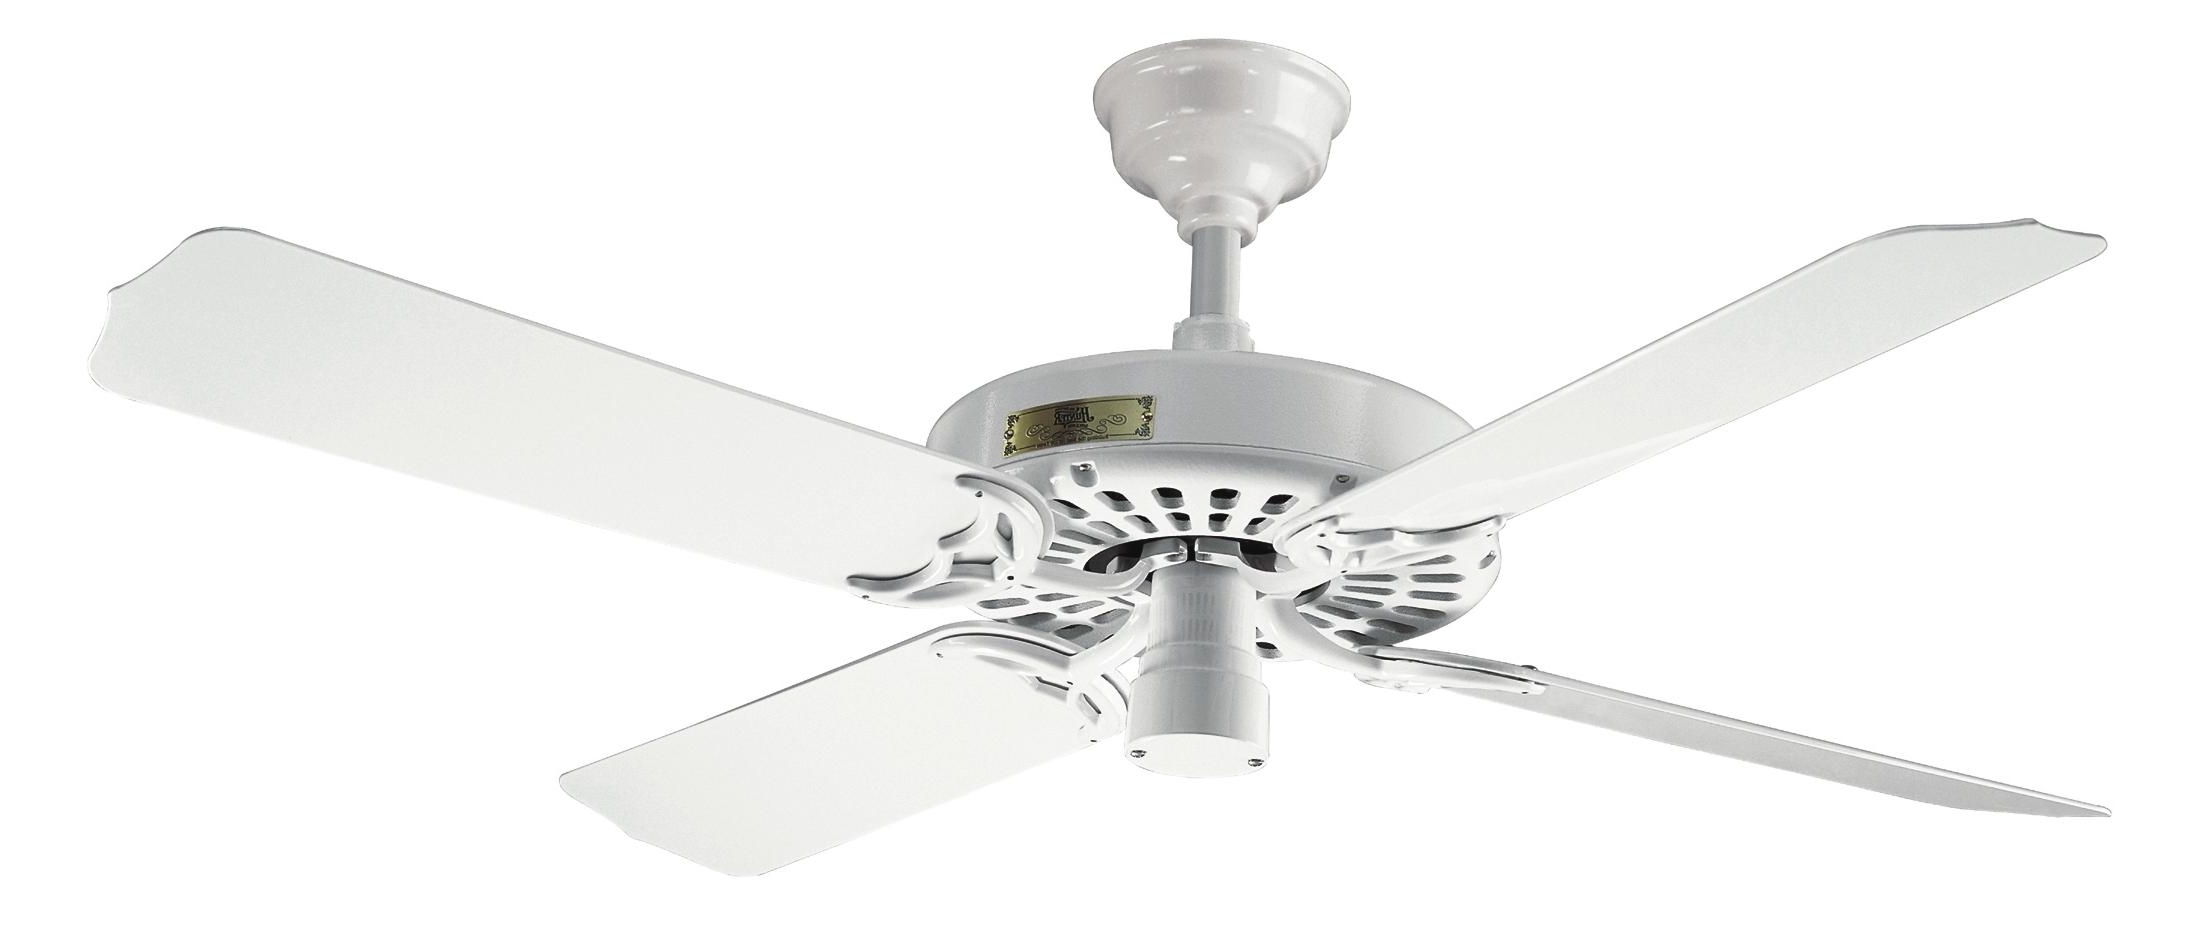 Hunter Outdoor Ceiling Fans With White Lights Intended For Latest Hunter Outdoor Original White Ceiling Fan 25602 In White, Best (View 7 of 20)